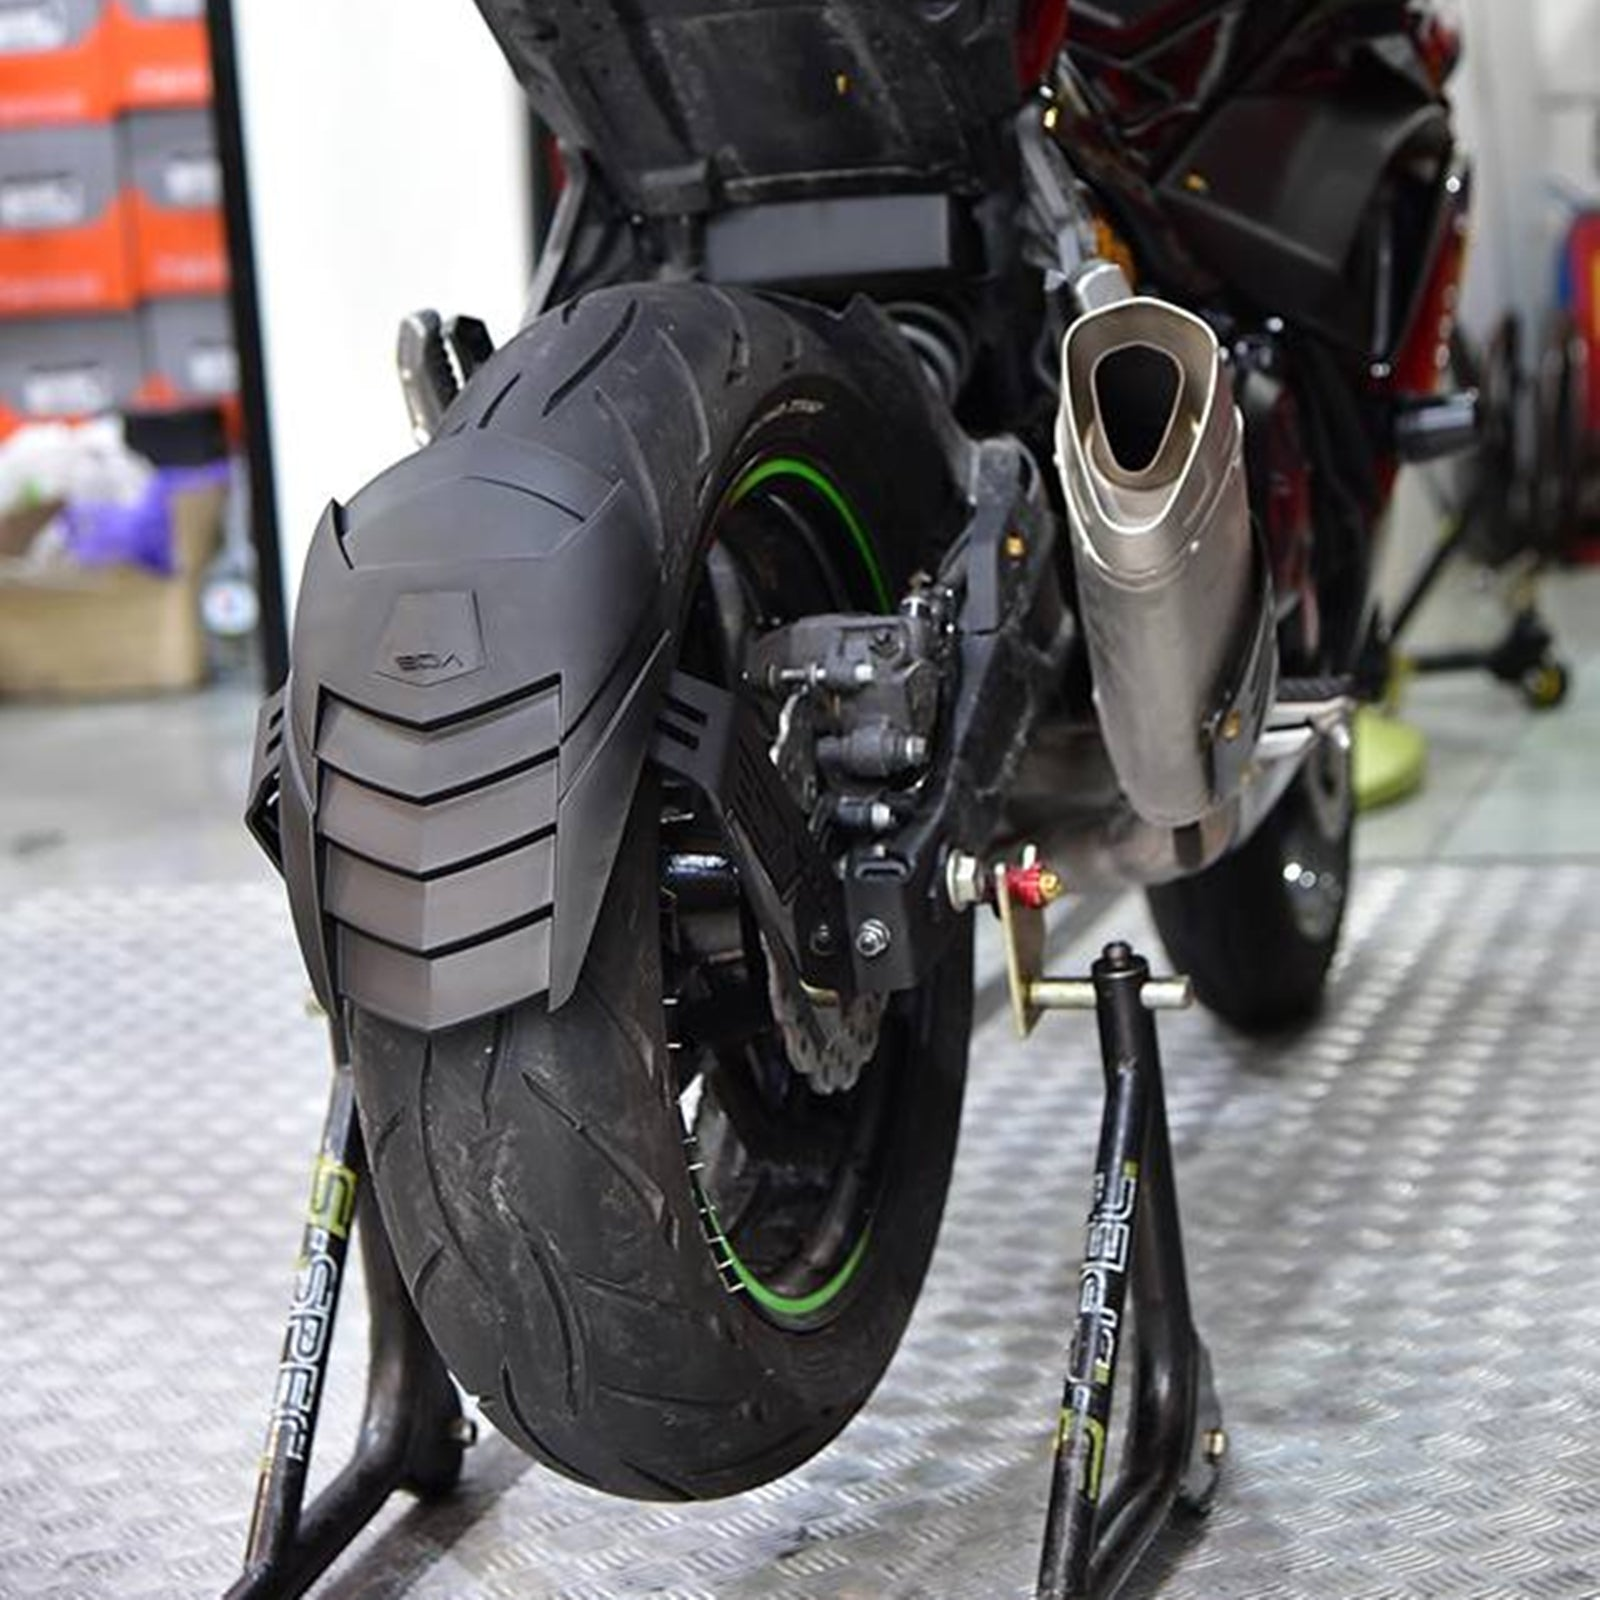 Mud Splash Guard Kawasaki Z650 Ninja 650 2017-2019